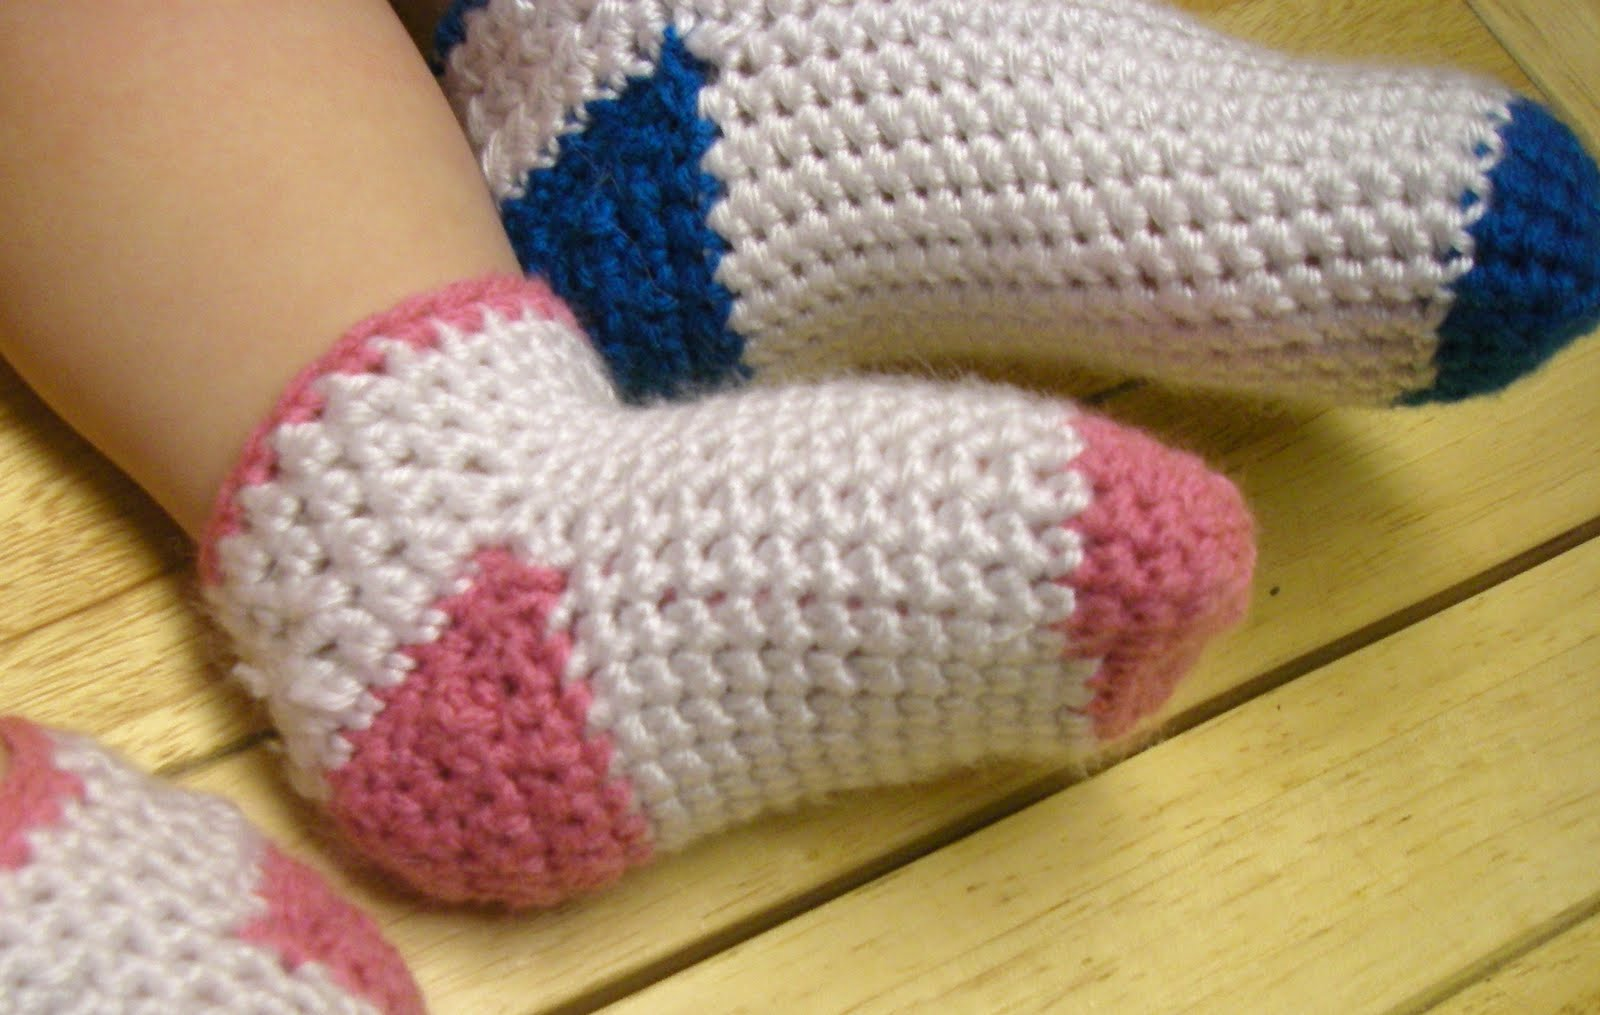 Crocheting Socks : Baby - Toddler Crochet Socks - mamacheemamachee